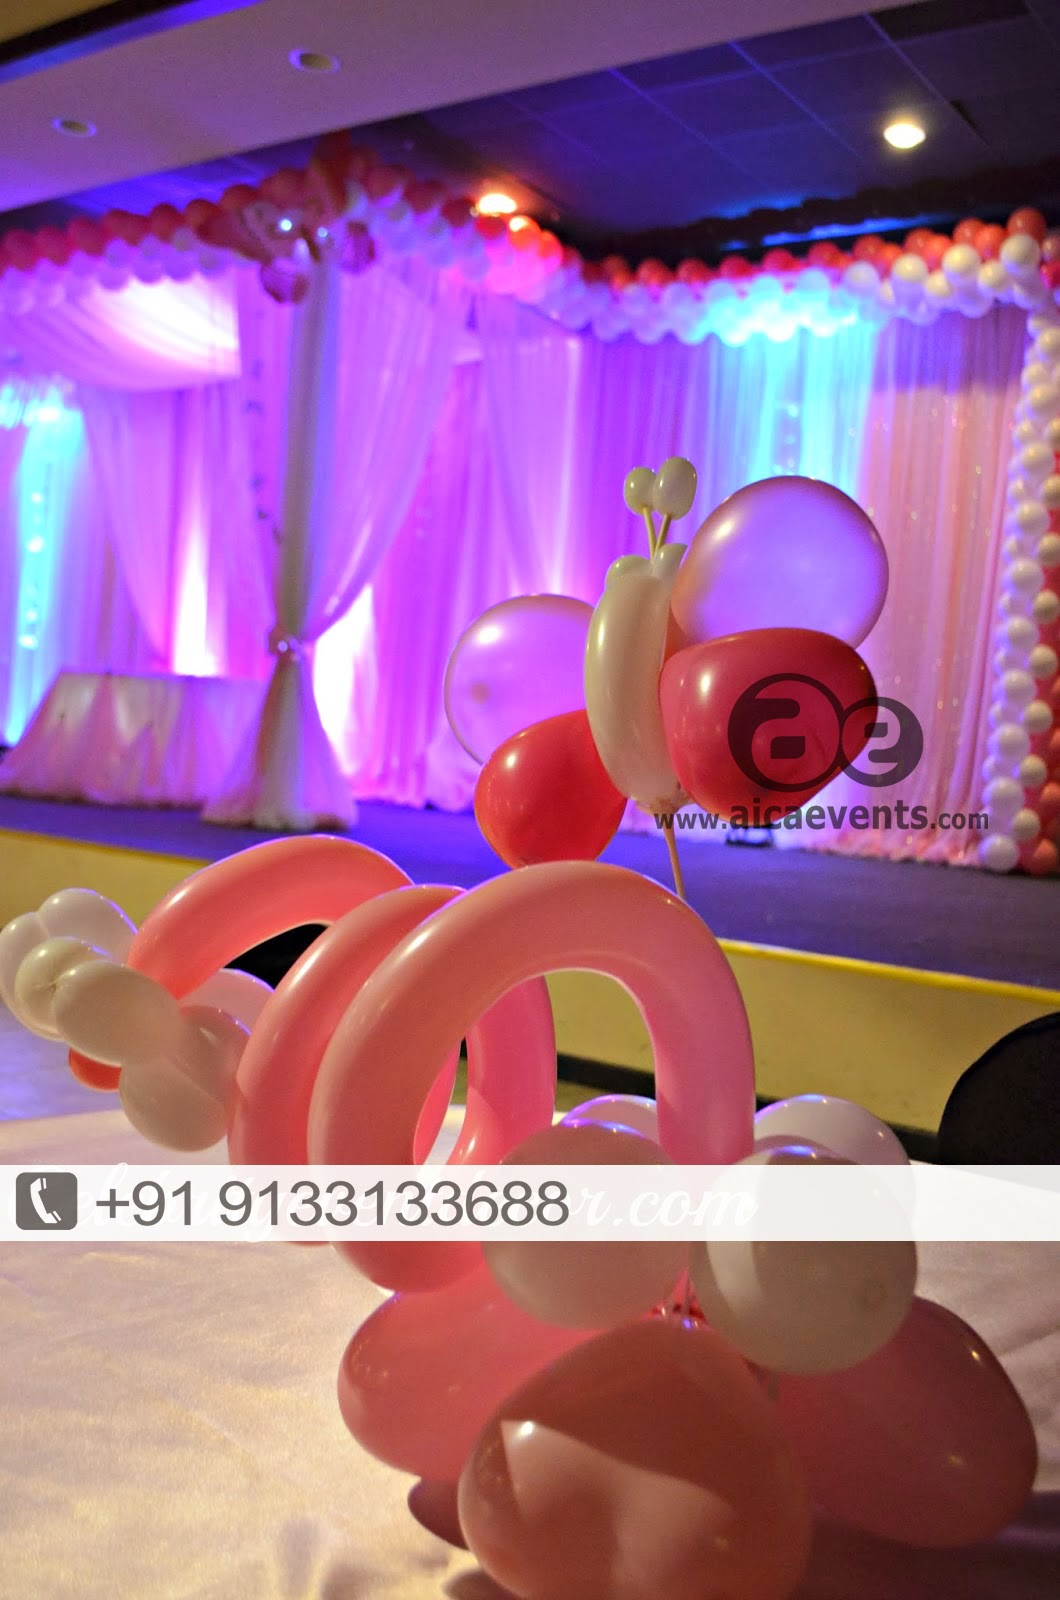 Aicaevents India Pretty in Pink 1st Birthday party